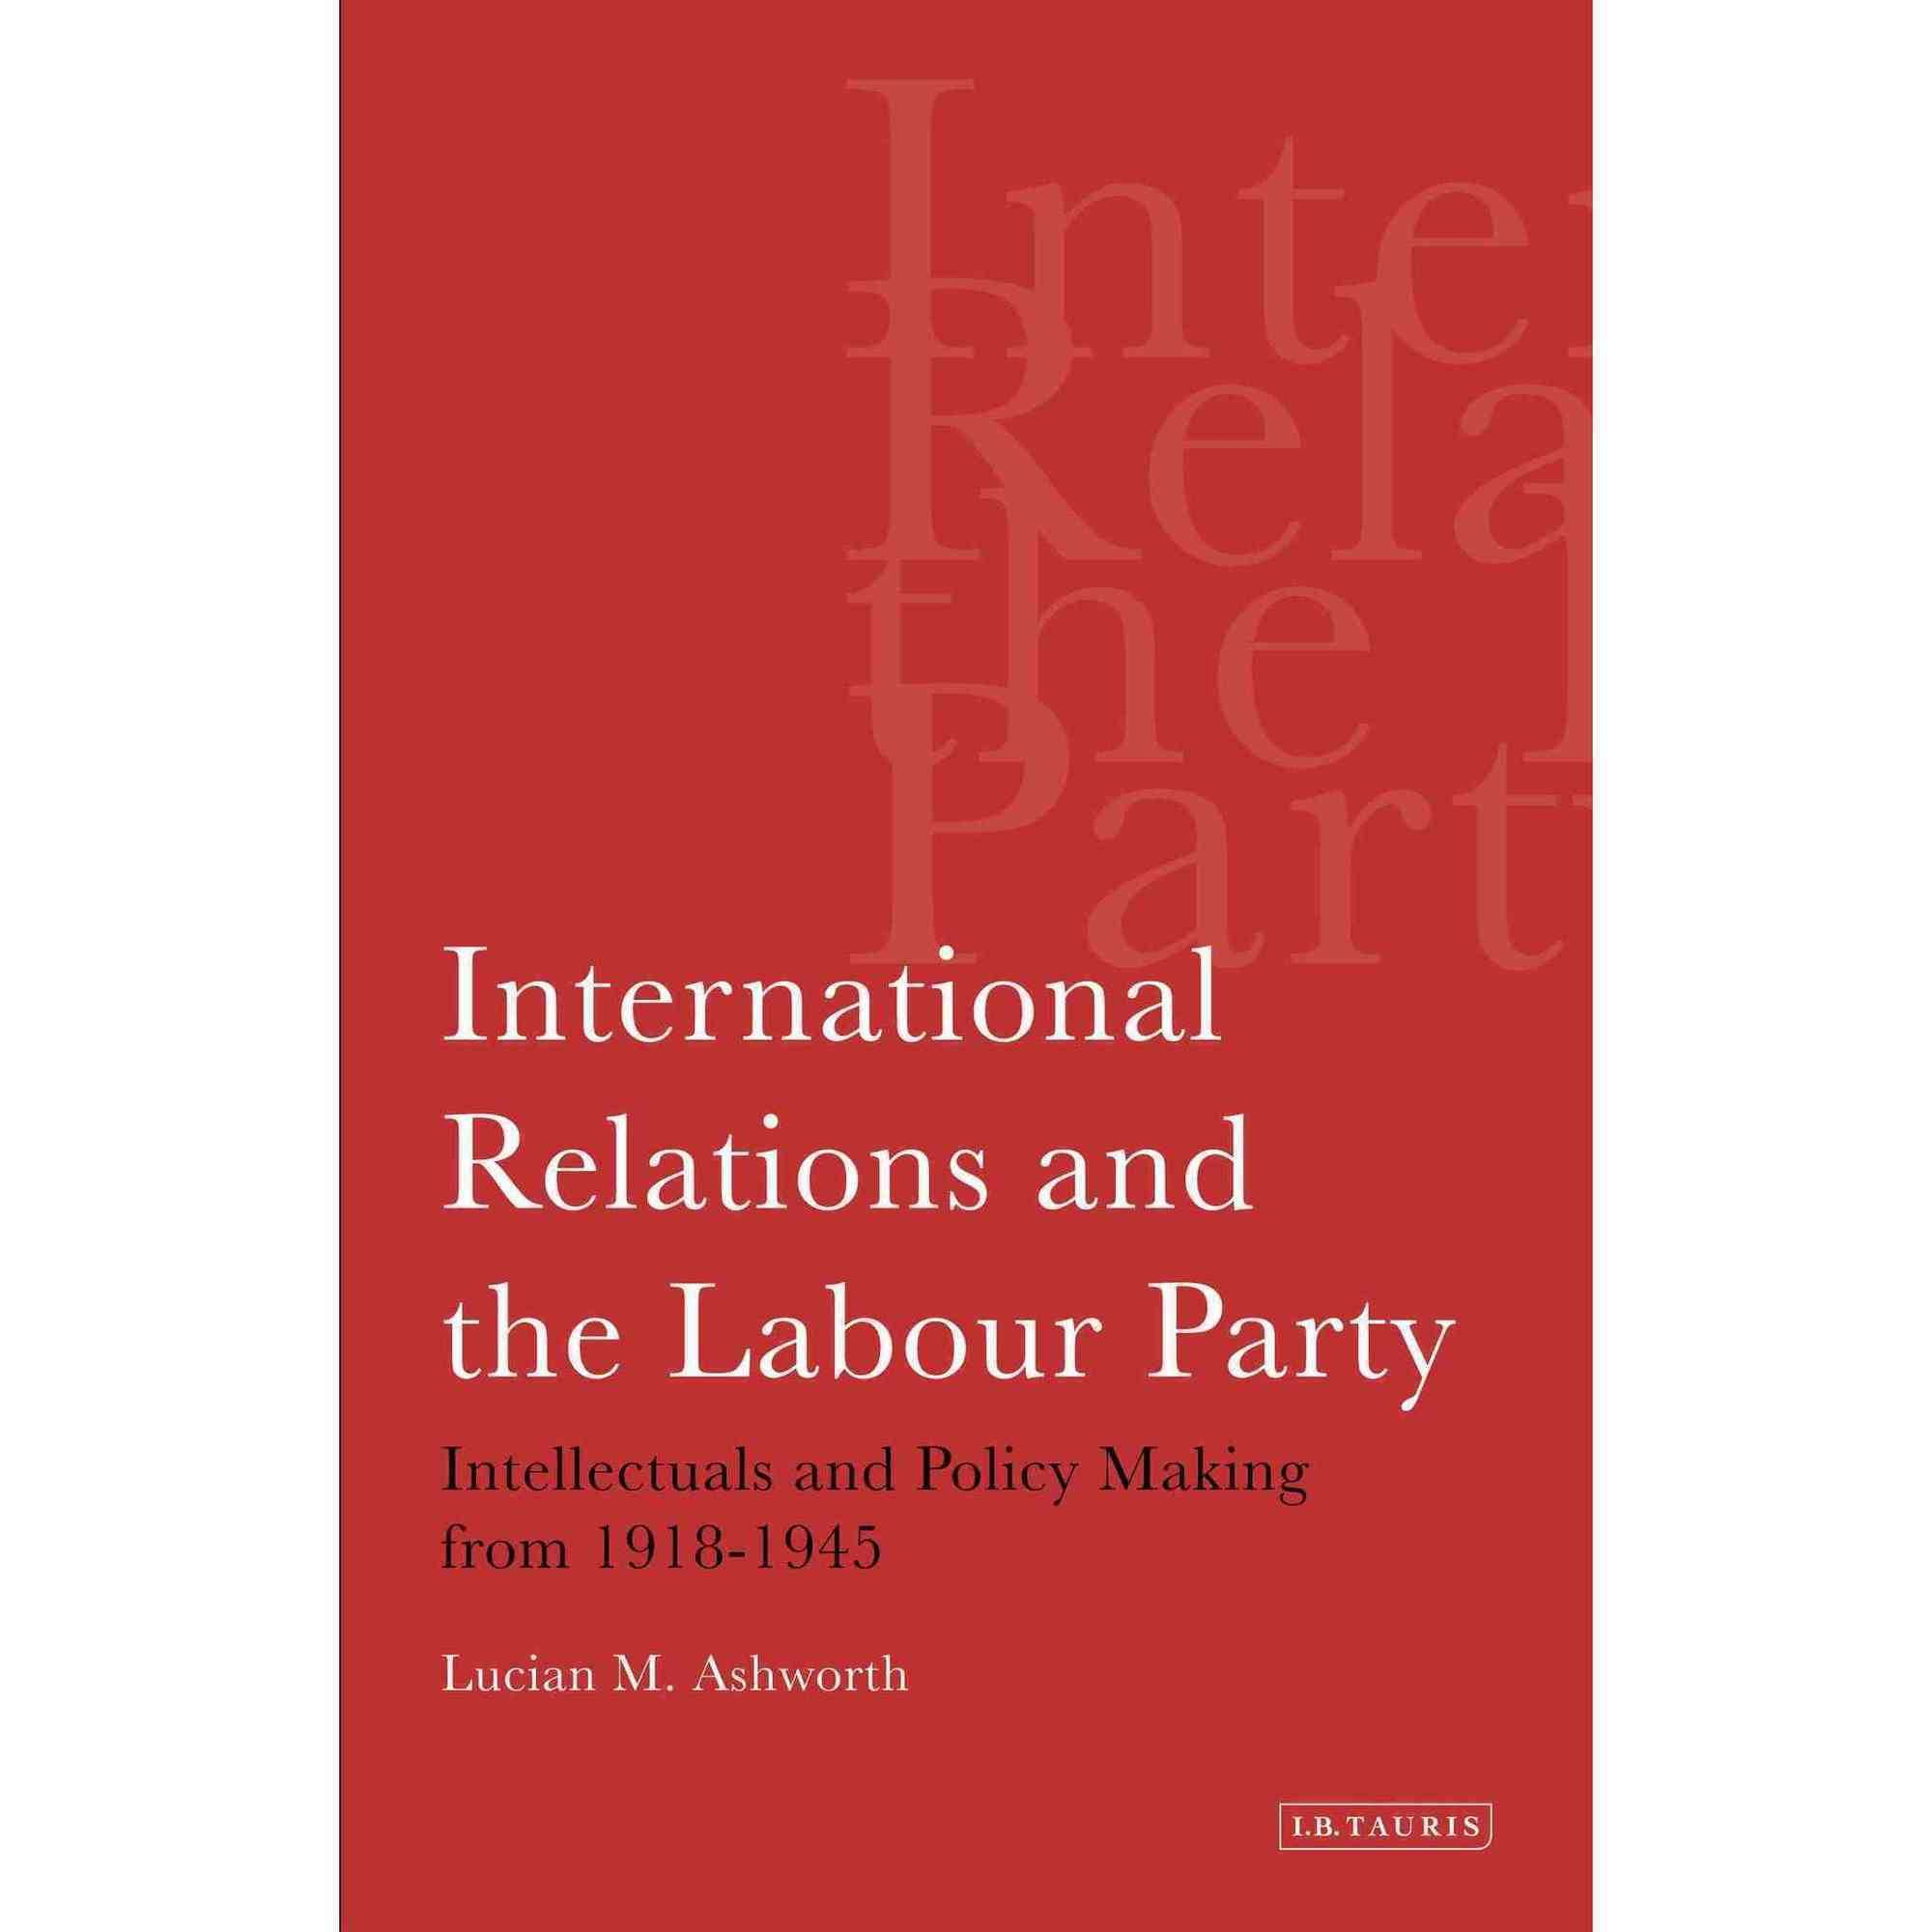 International Relations and the Labour Party: Intellectuals and Policy Making from 1918-1945